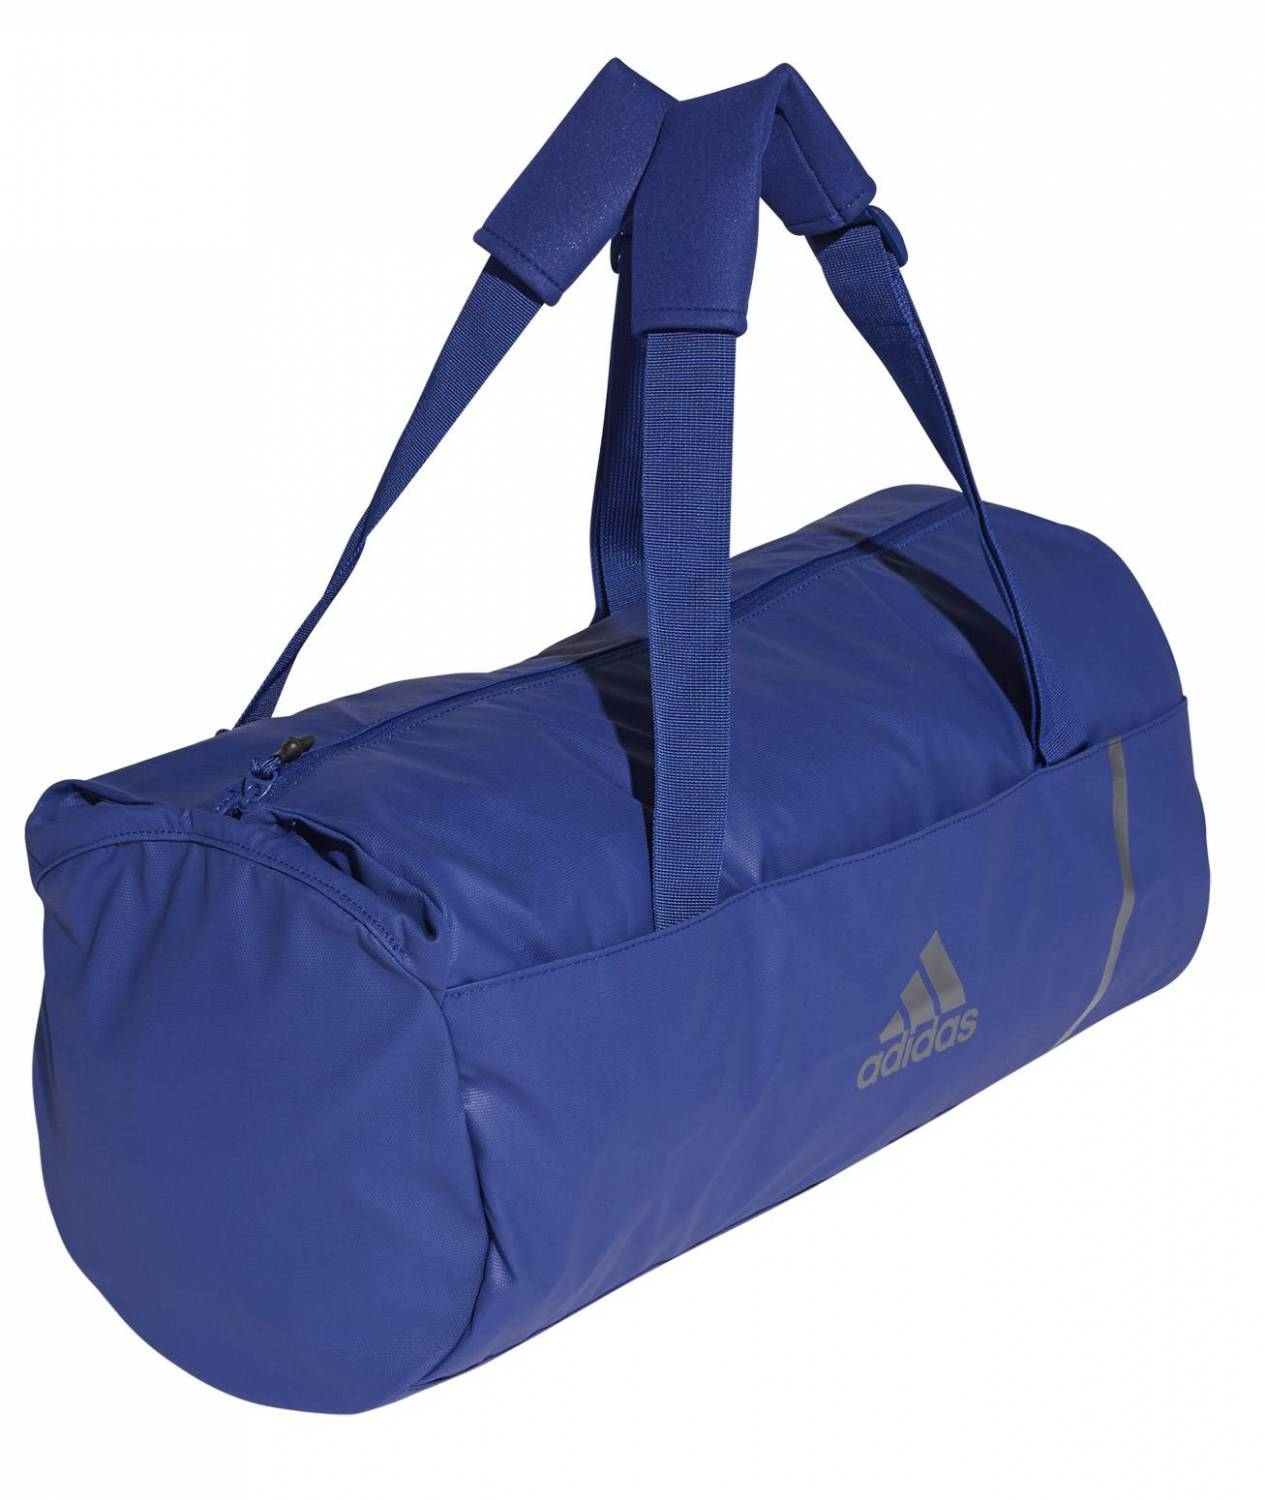 adidas-convertible-duffelbag-m-tasche-farbe-mystery-ink-f17-night-met-night-met-